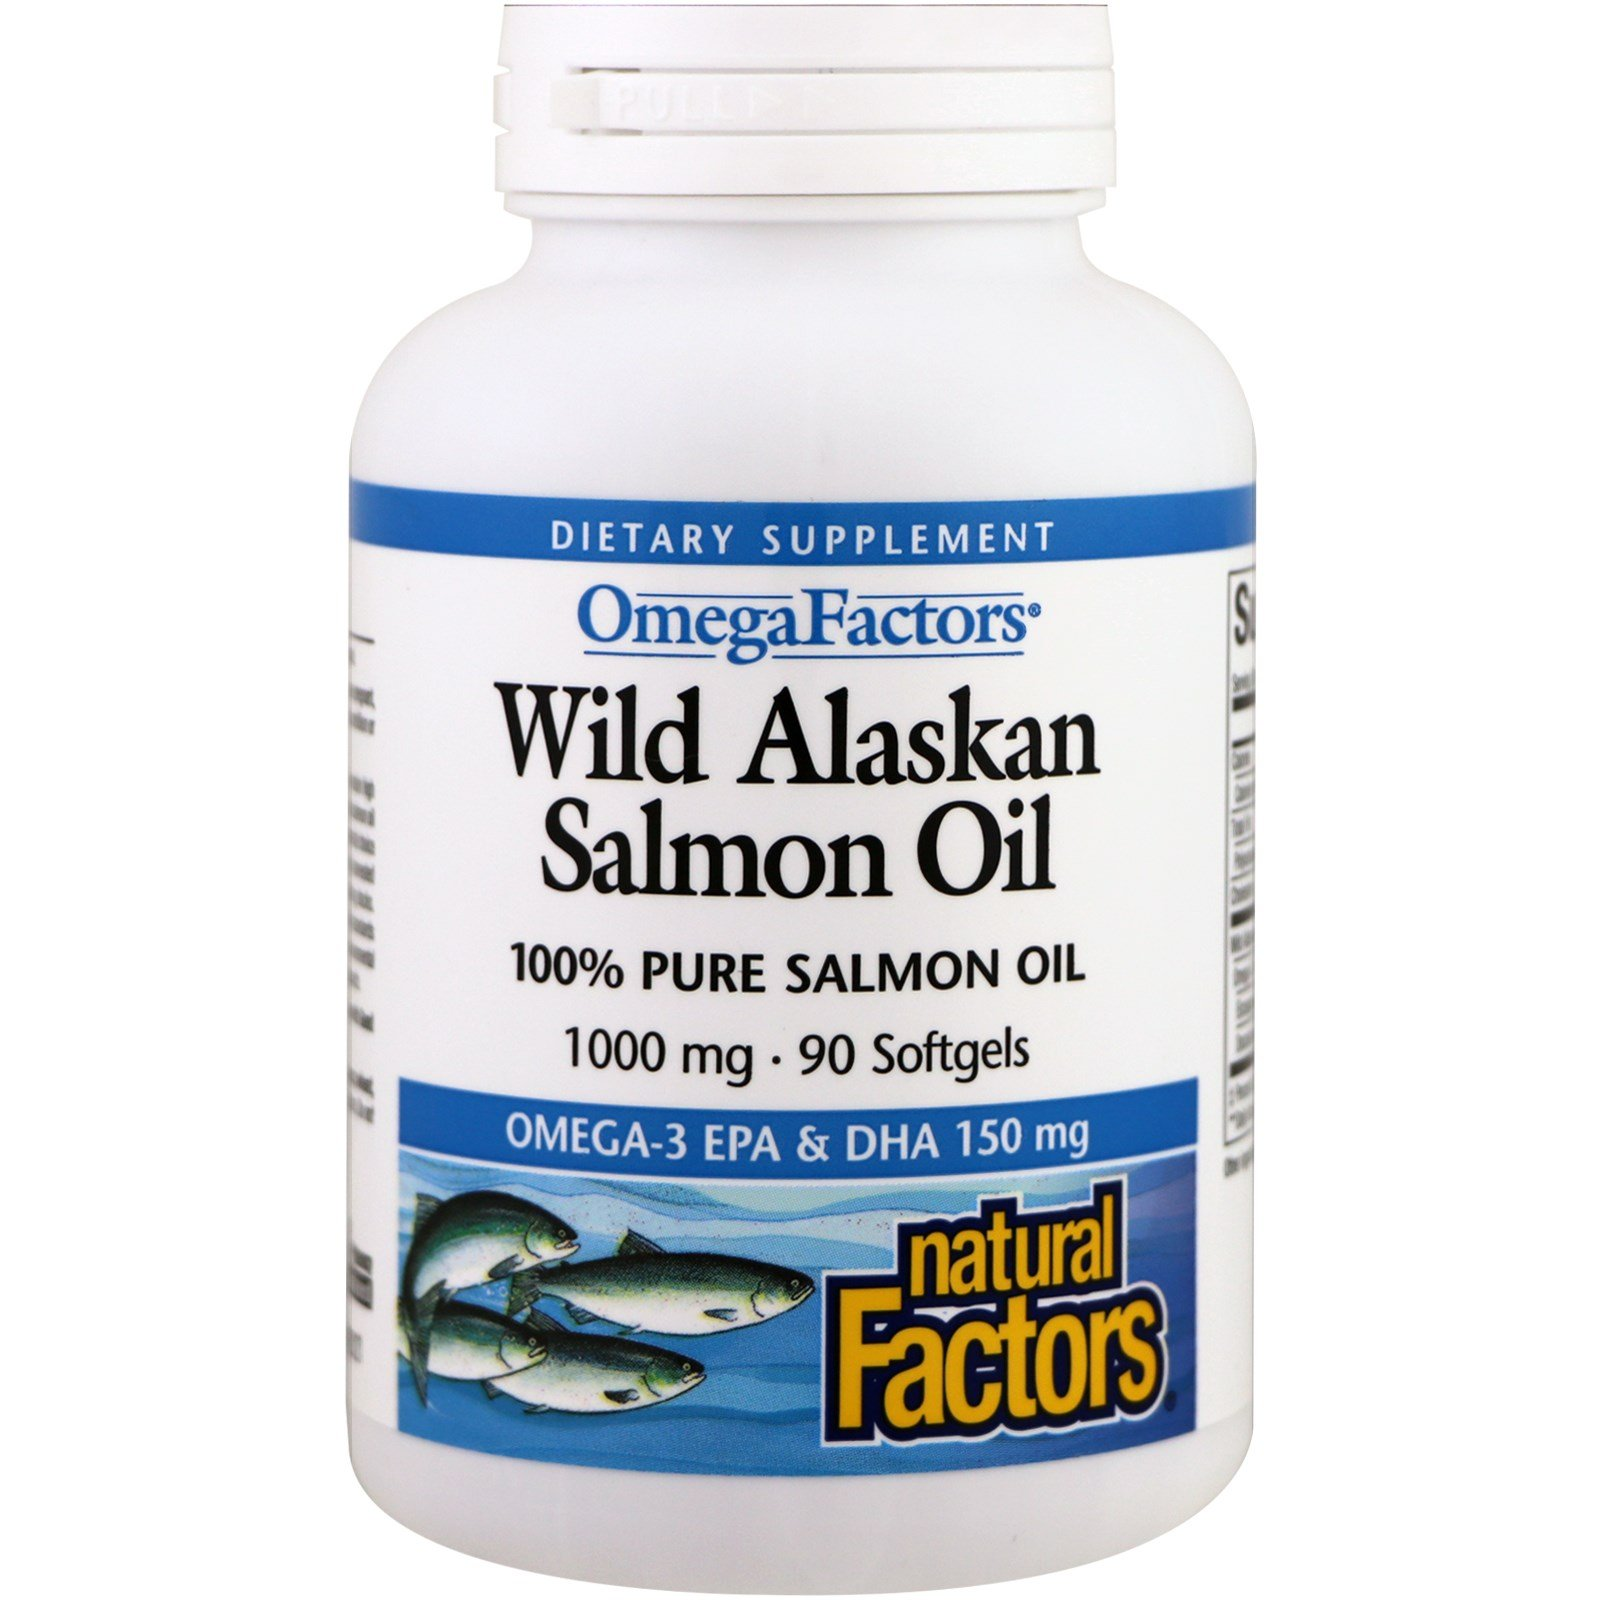 Natural Factors, Wild Alaskan Salmon Oil, 1000 mg, 90 Softgels